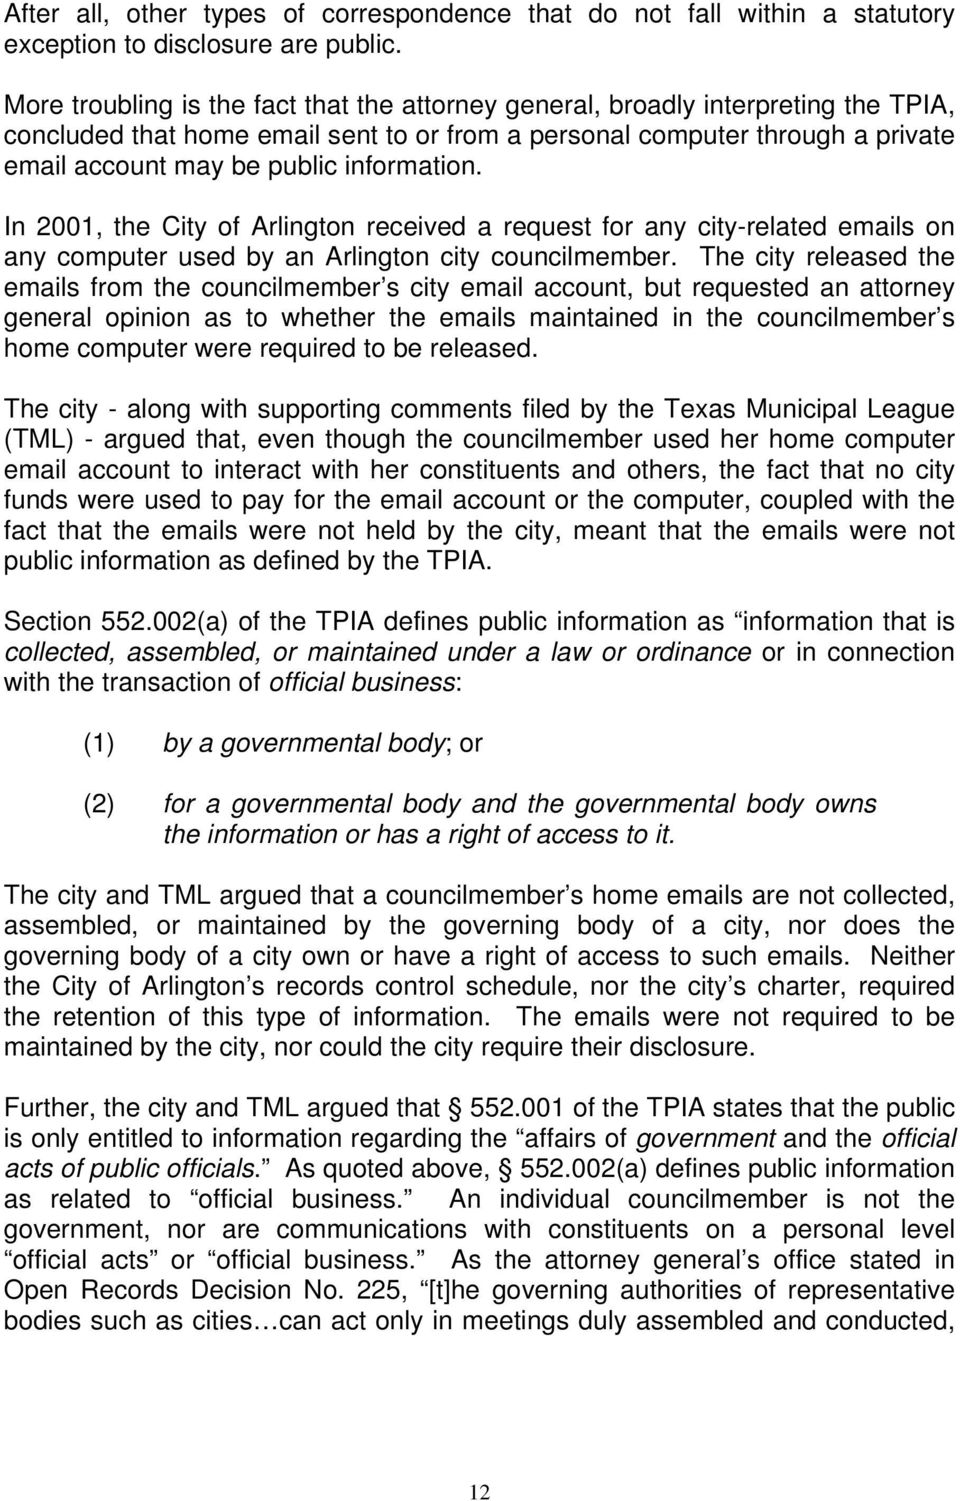 information. In 2001, the City of Arlington received a request for any city-related emails on any computer used by an Arlington city councilmember.